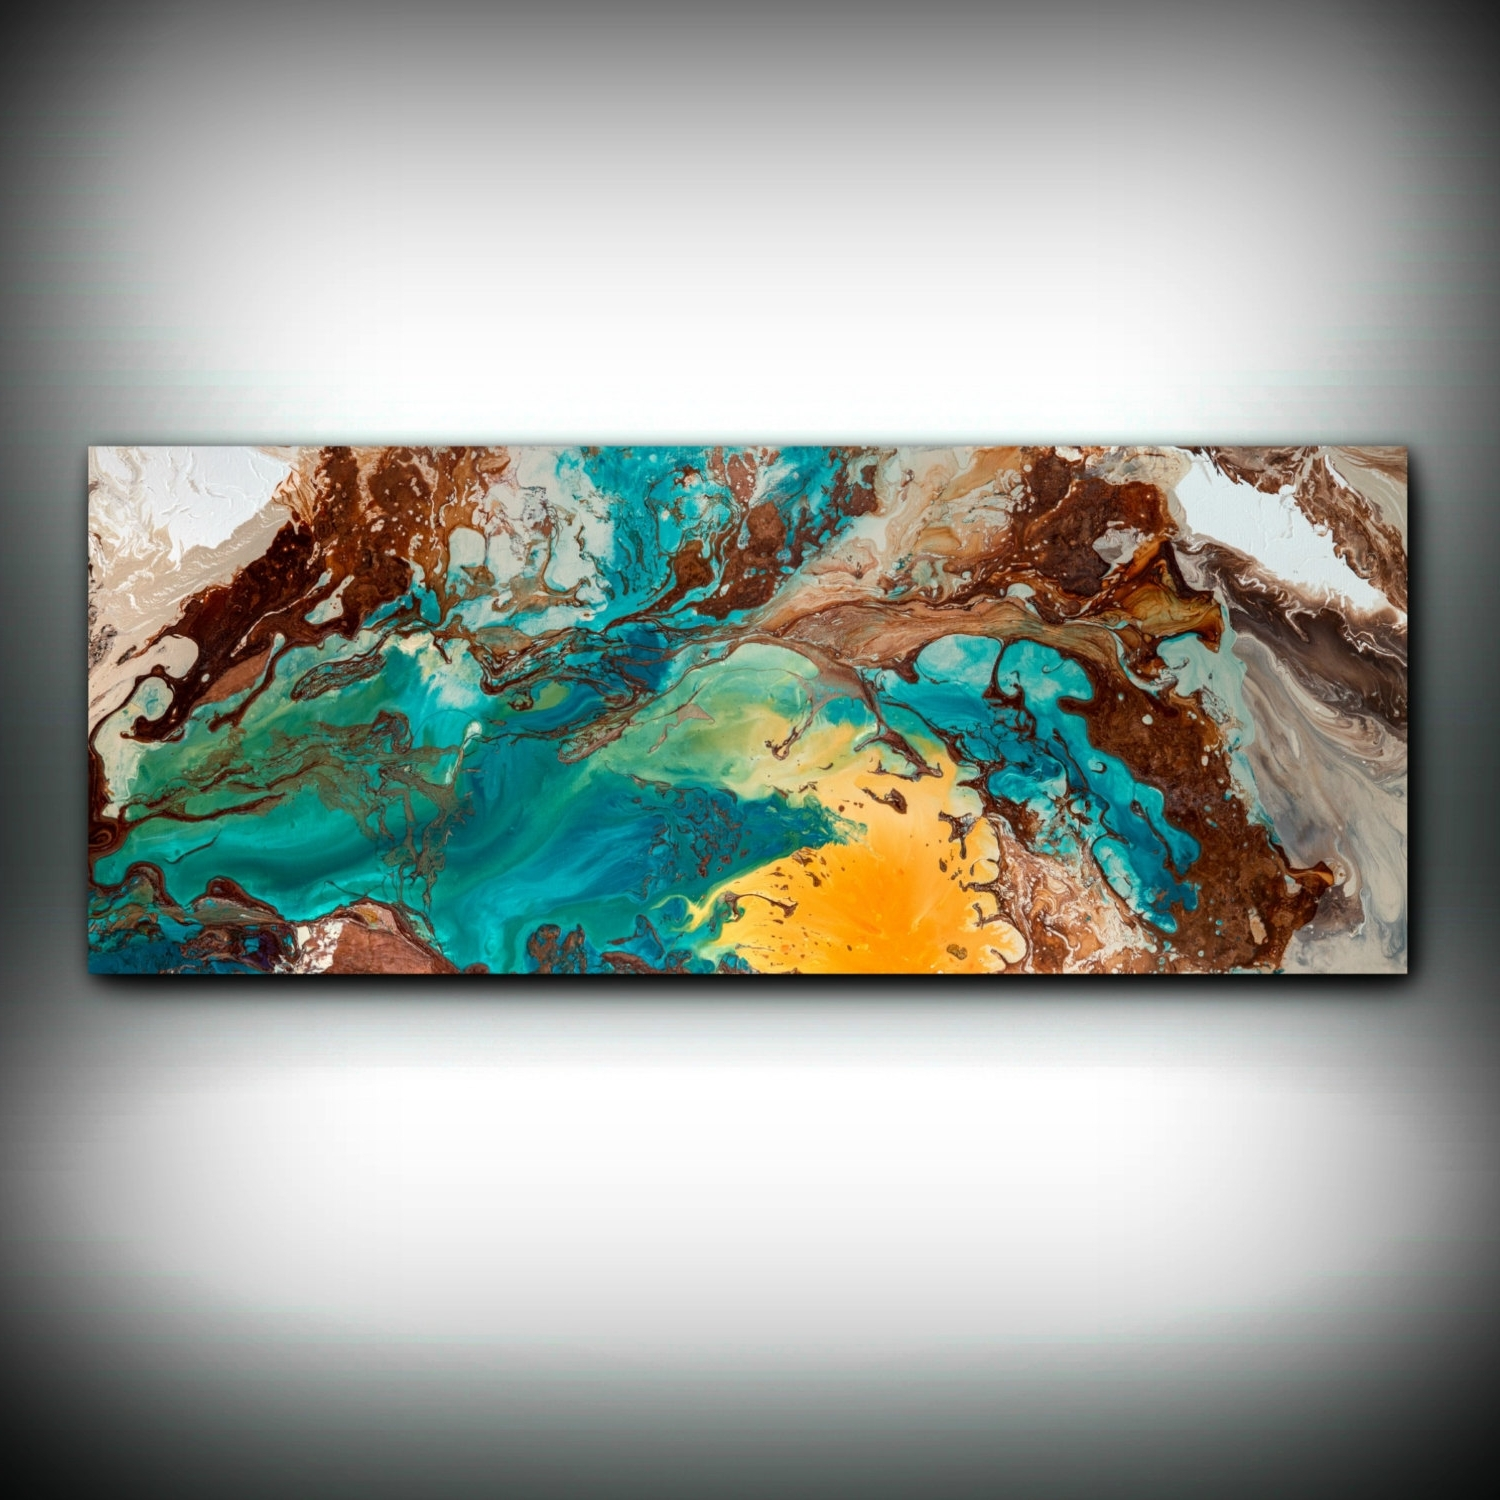 2018 Canvas Wall Decor Large Abstract Wall Art Print Blue Brown Modern Within Teal And Brown Wall Art (View 1 of 15)